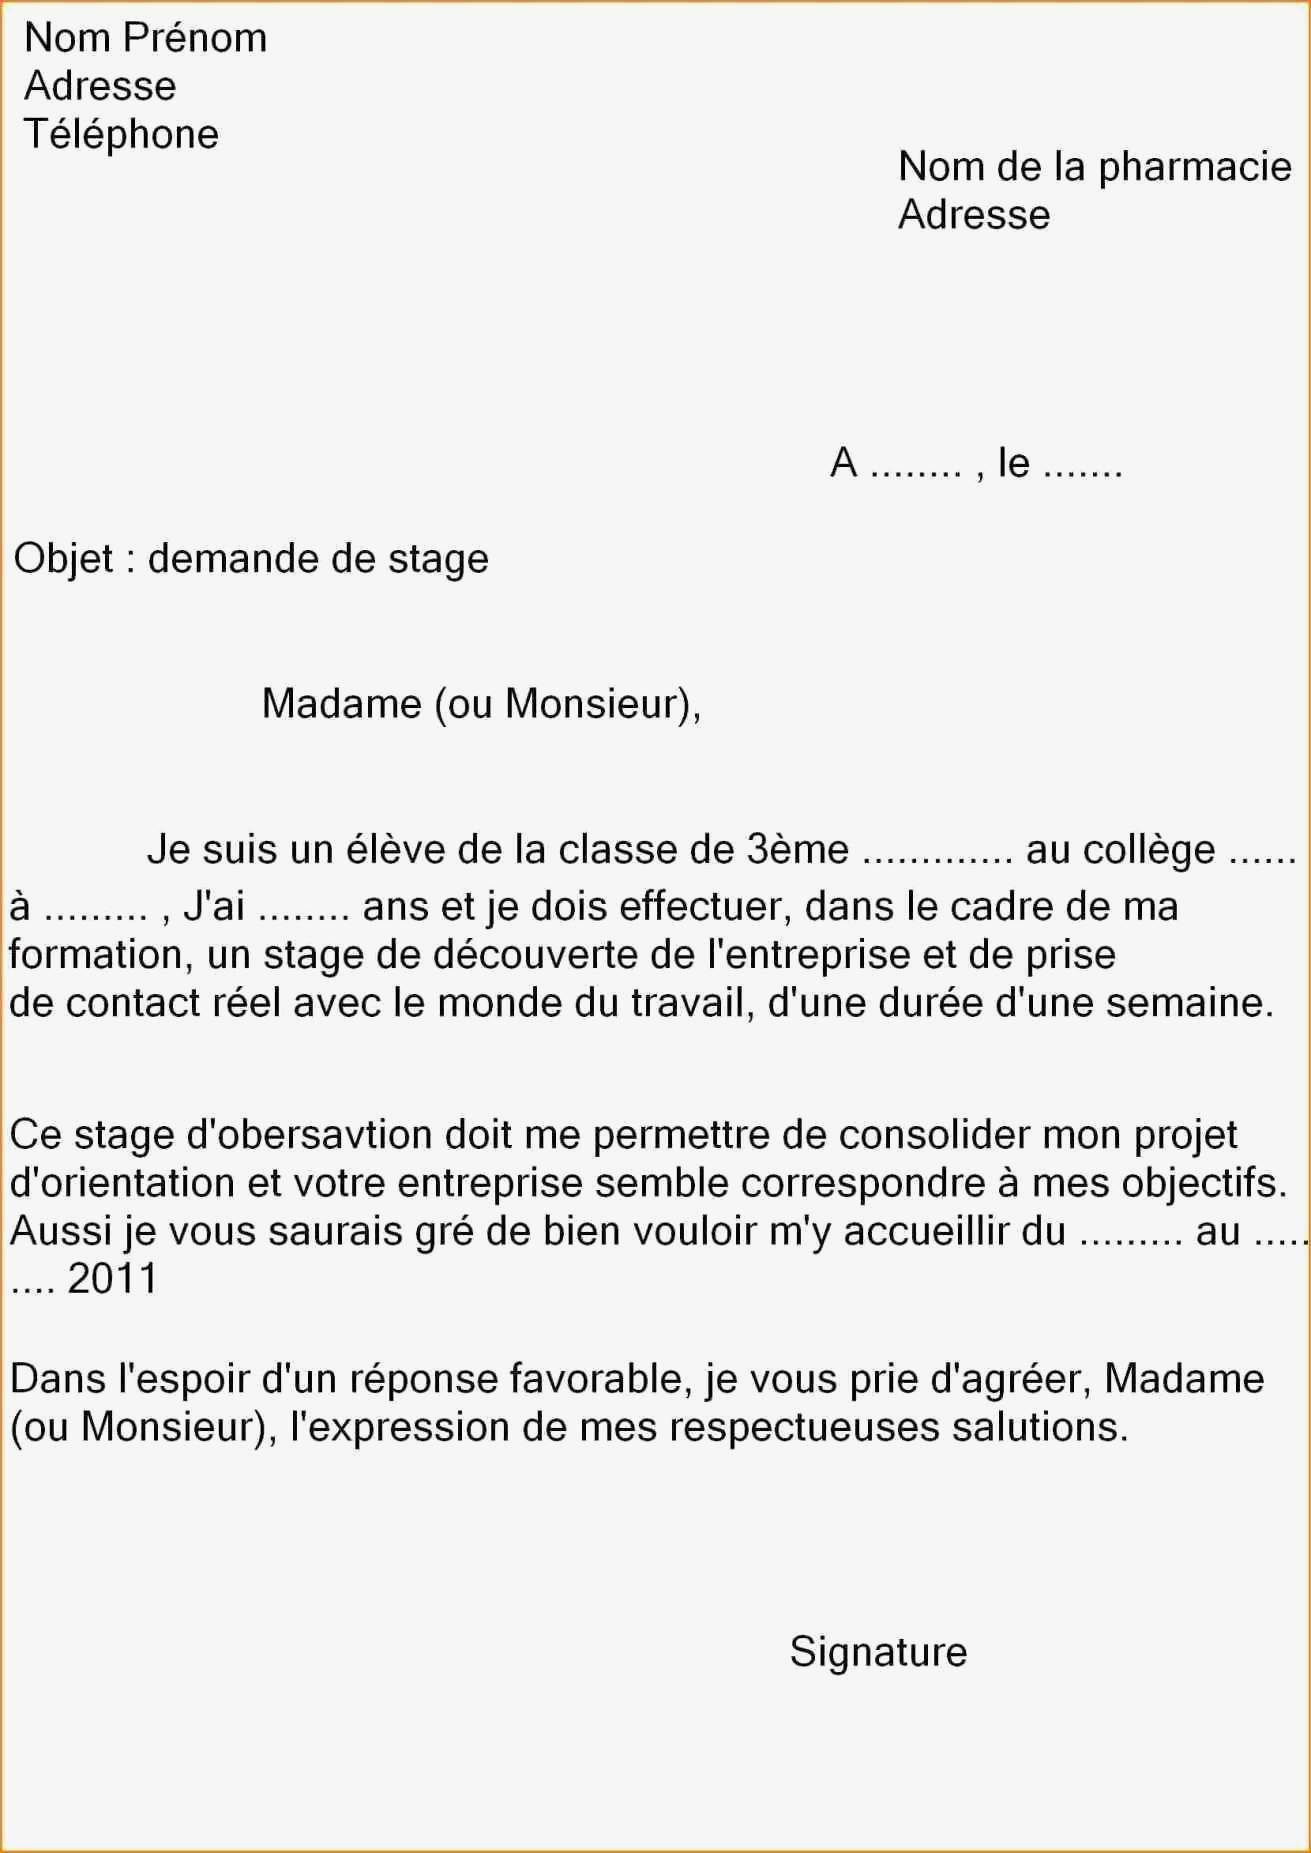 Lettre De Motivation Apb Bts Exemple De Cv Bts Nouveau Lettre De Motivation Pharmacie Unique X240